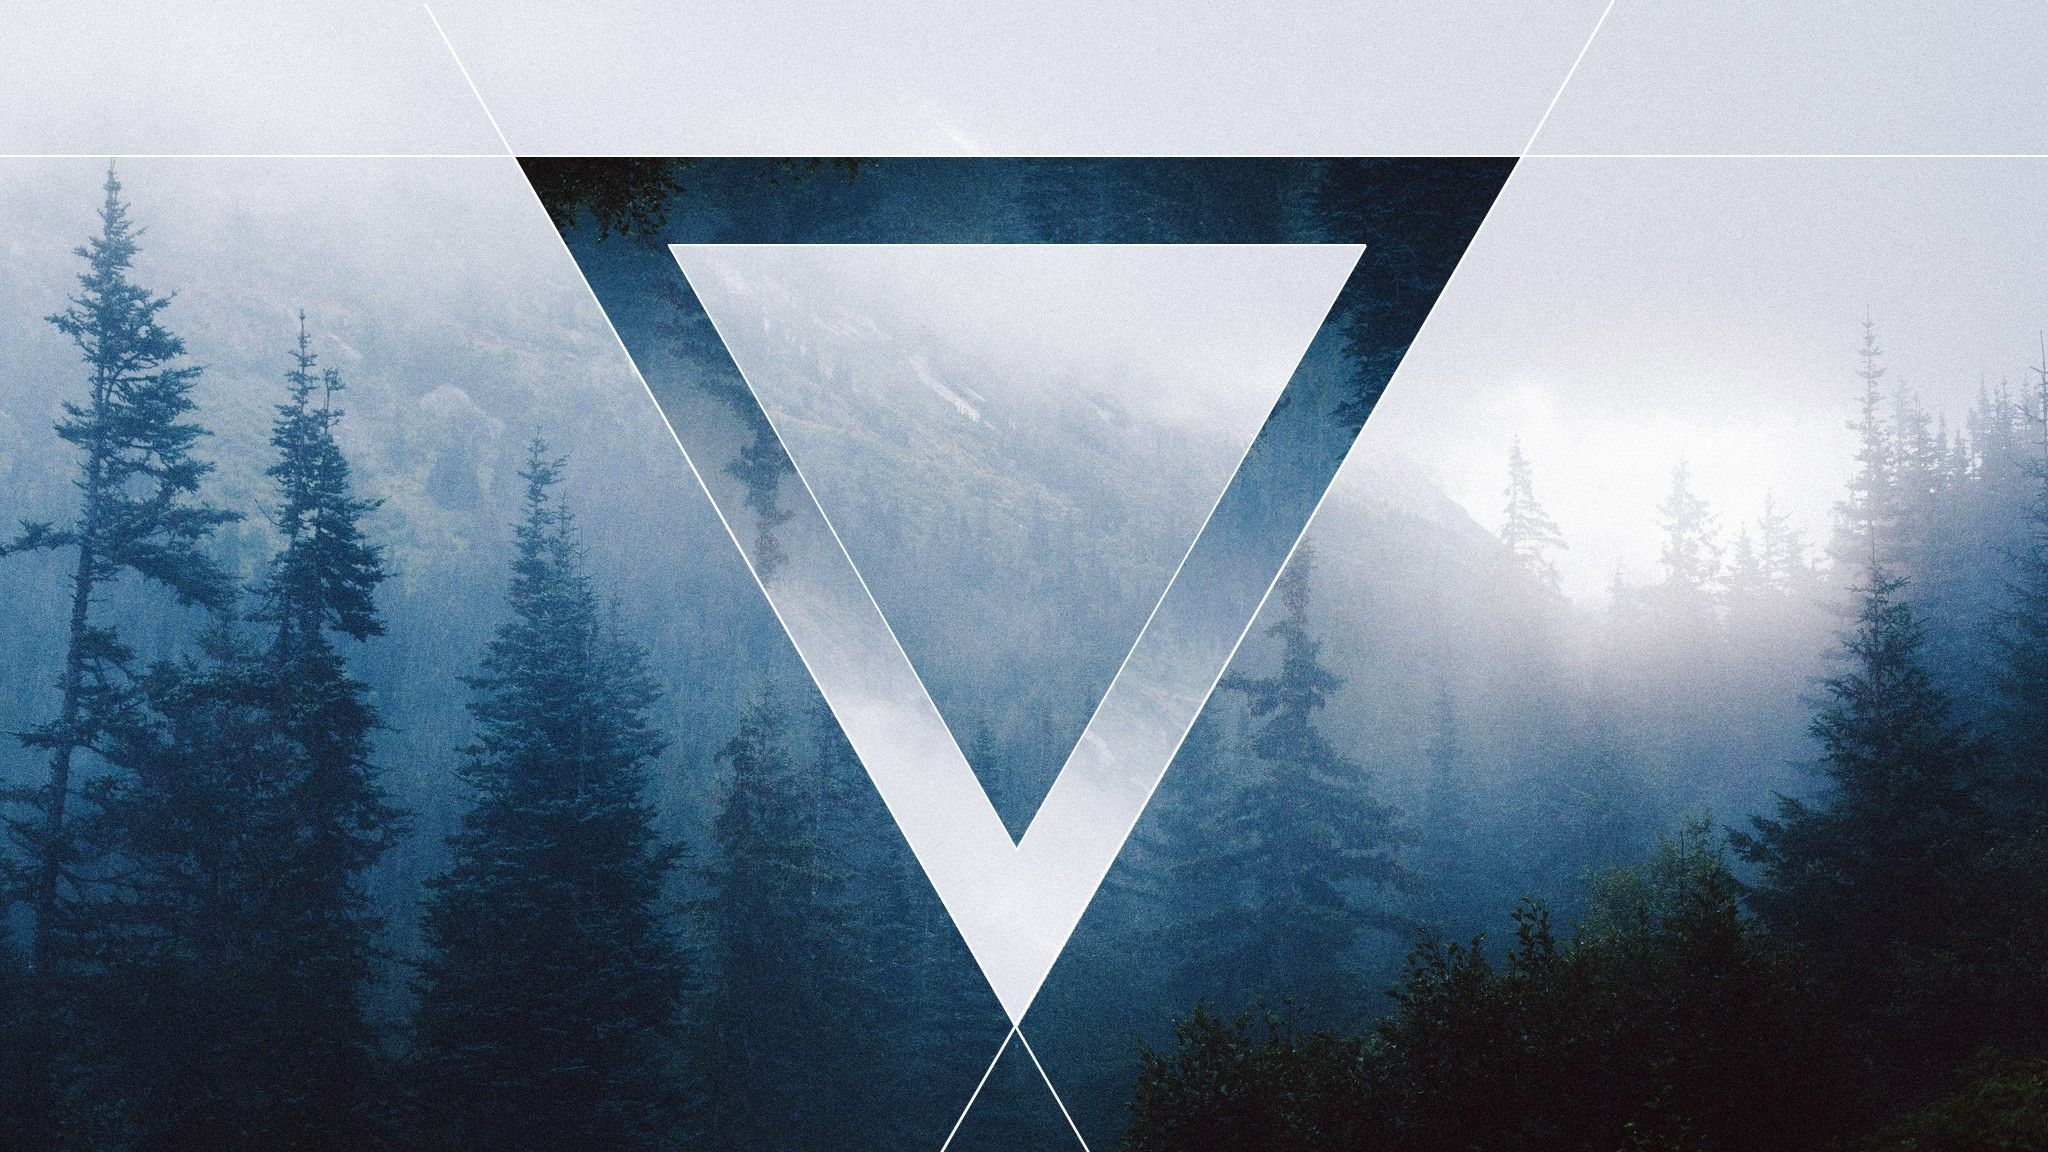 Triangle Forest Wallpapers Top Free Triangle Forest Backgrounds Wallpaperaccess